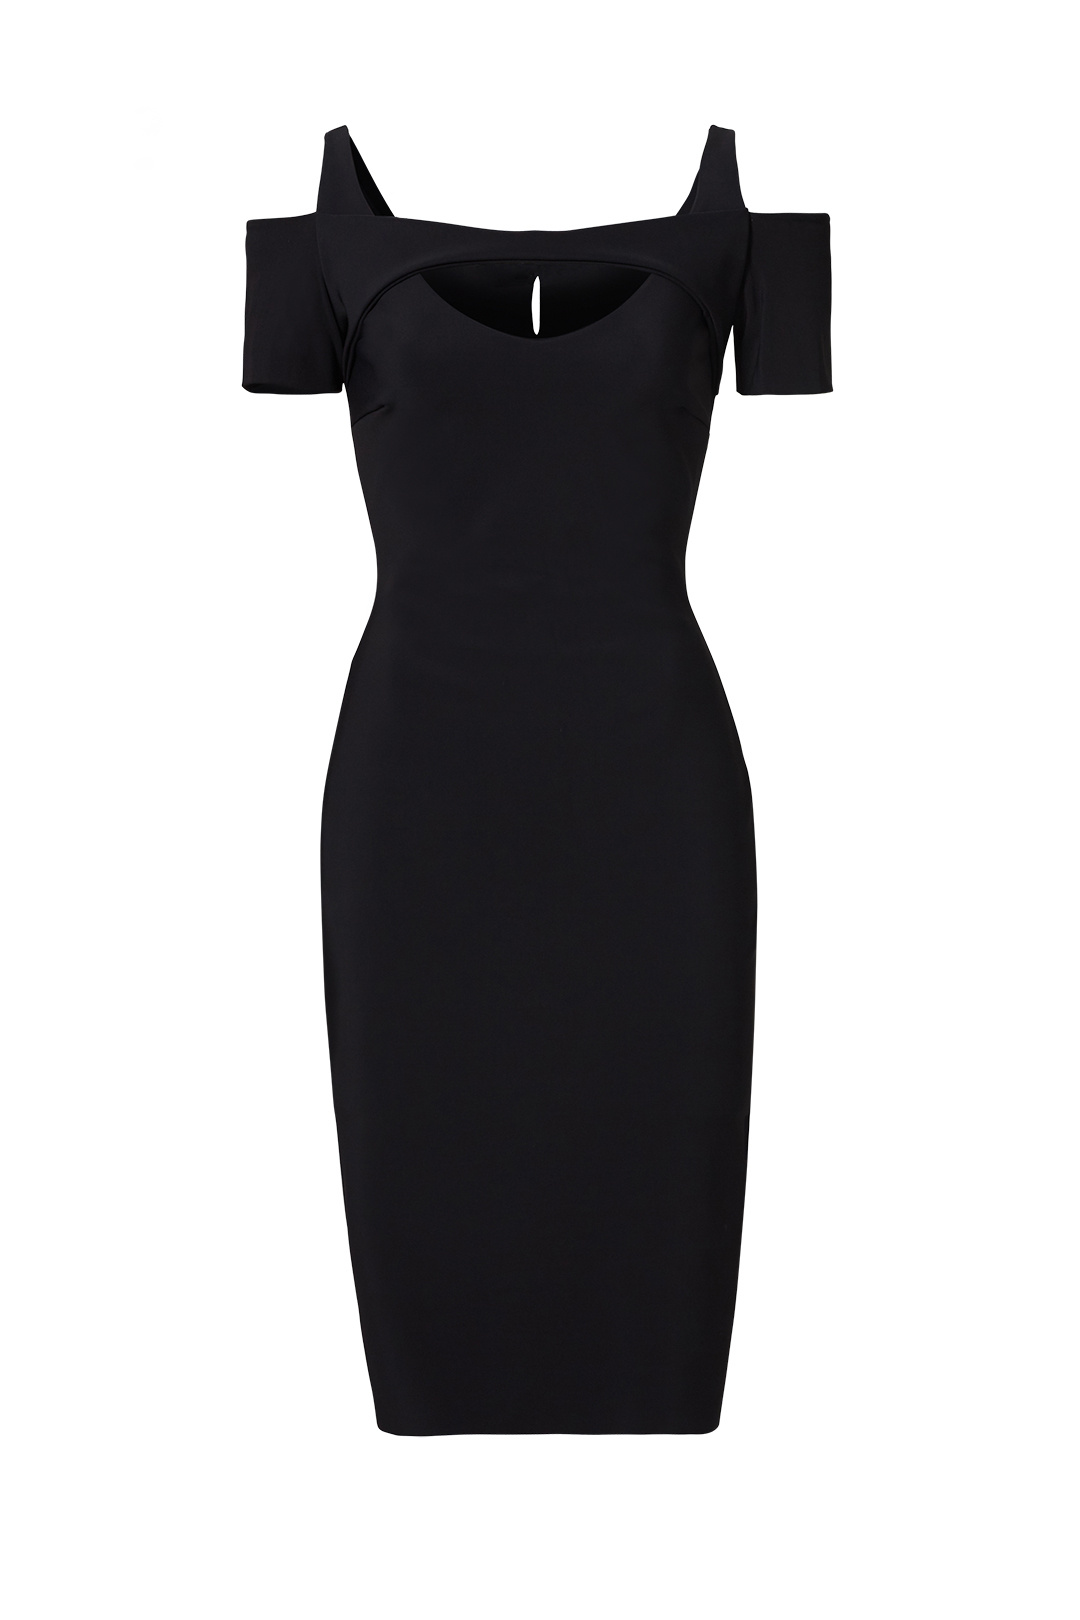 ac365e91 Details about La Petite Robe di Chiara Boni Black Women's 42 Cutout Sheath  Dress $590- #268